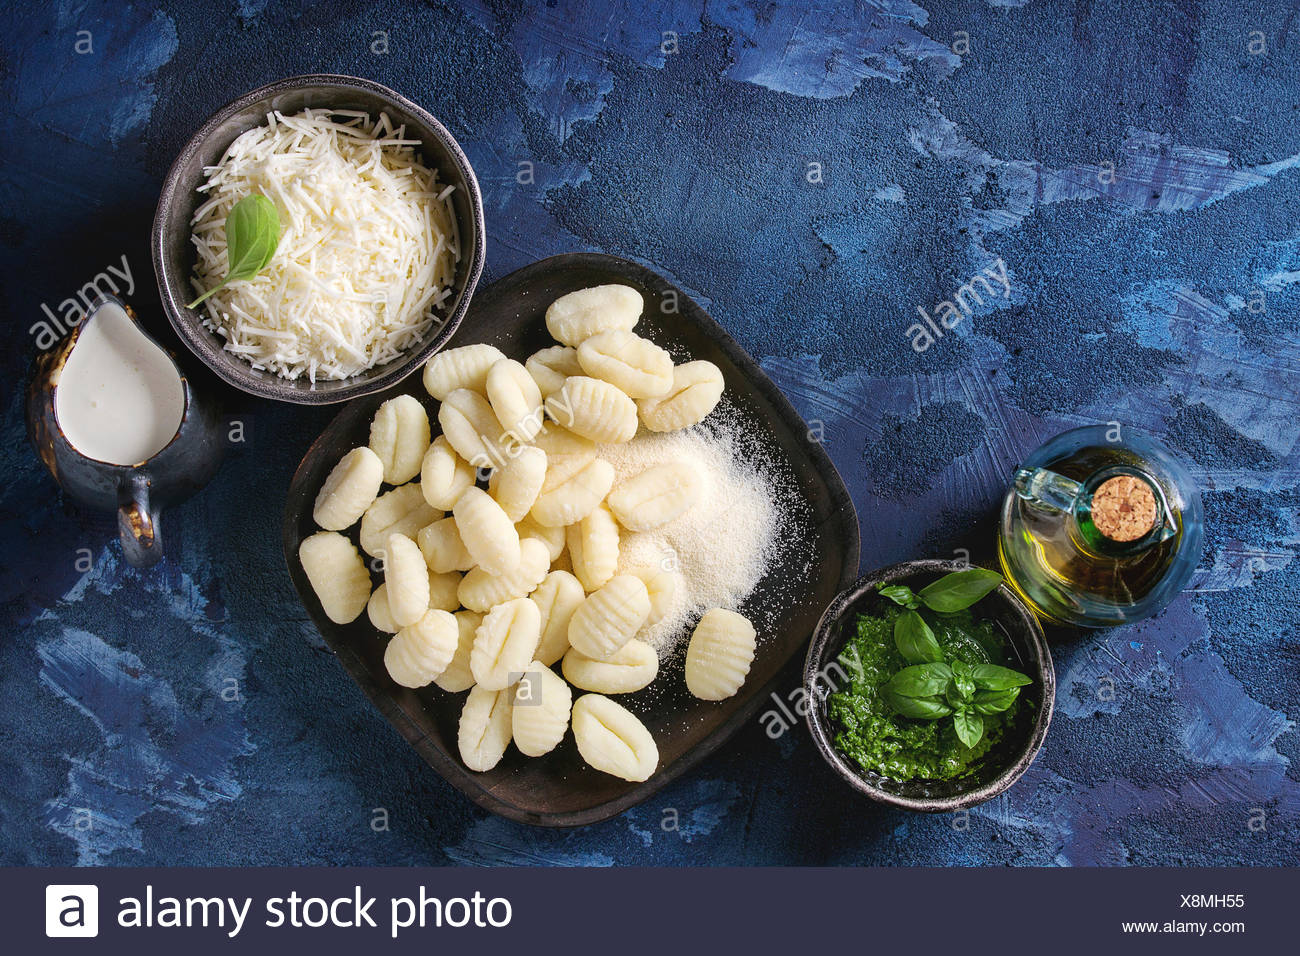 Raw uncooked potato gnocchi in black wooden plates with ingredients. Flour, grated parmesan cheese, pesto sauce, jug of cream, olive oil over dark blu - Stock Image